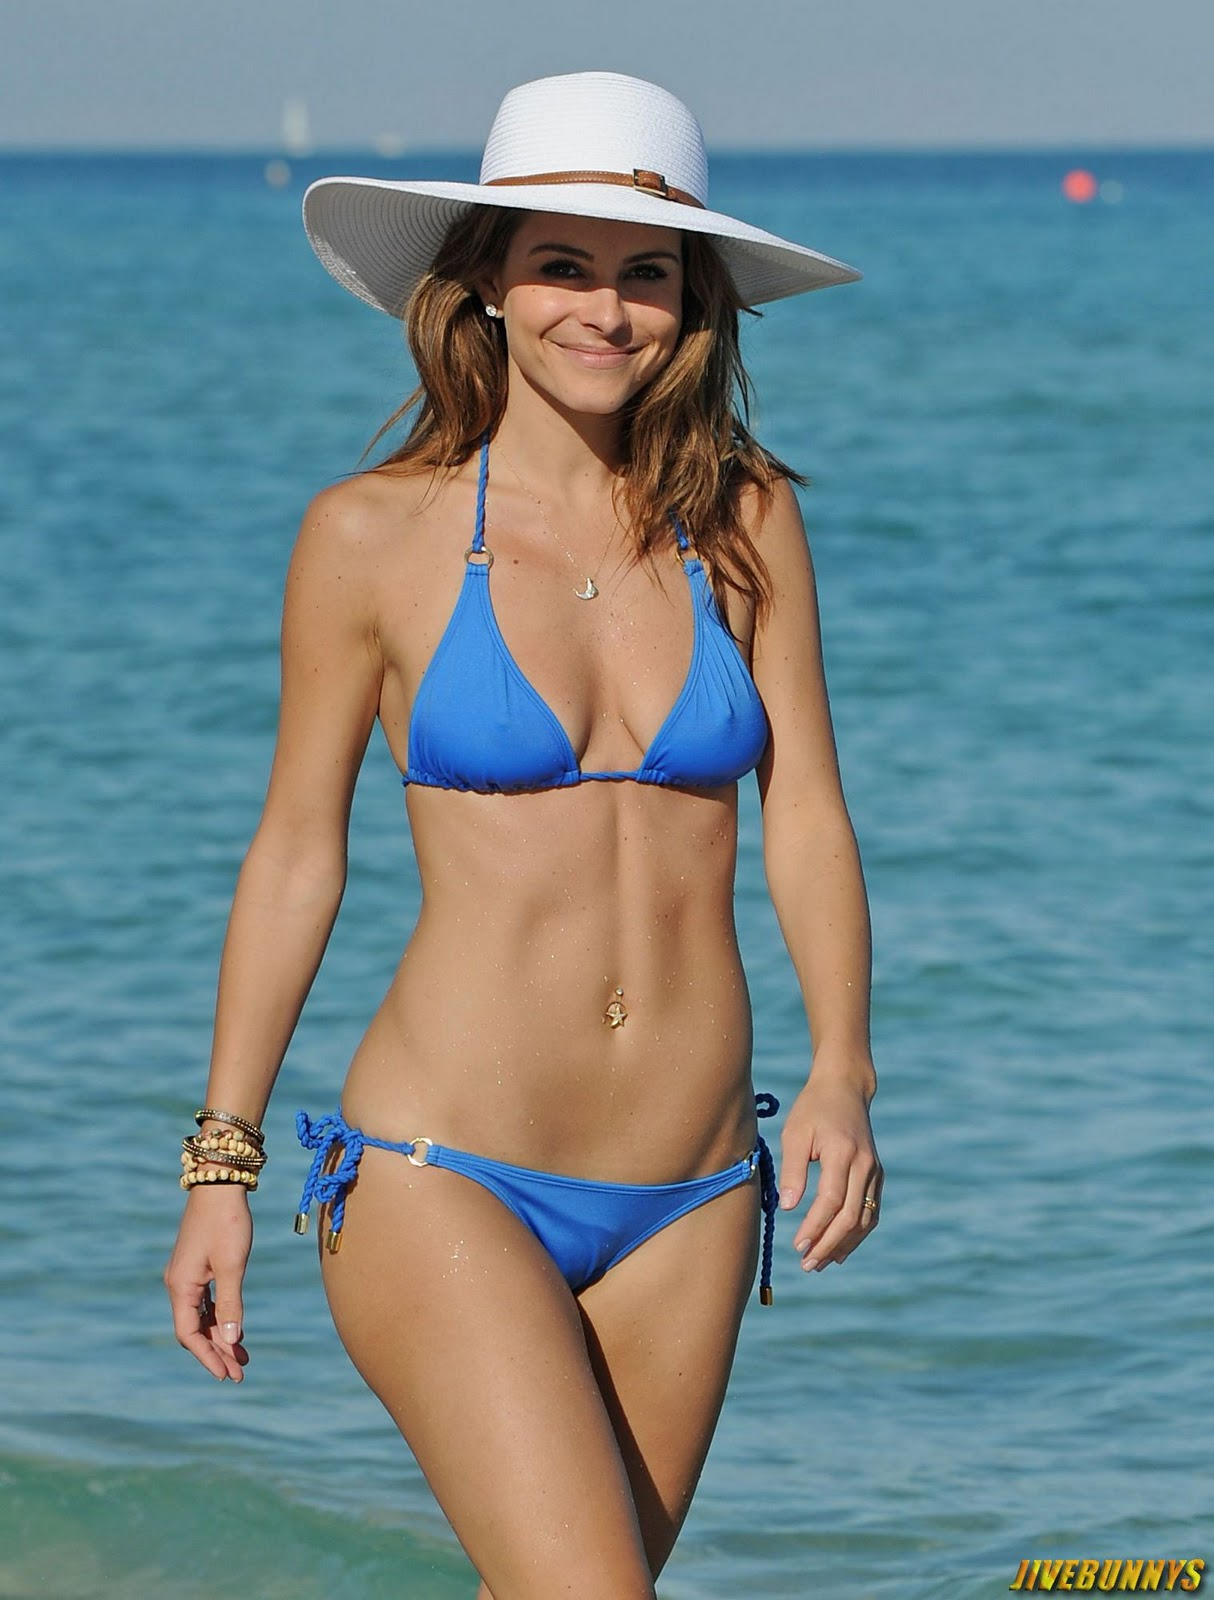 Jivebunnys Female Celebrity Picture Gallery: Maria Menounos - Actress ... Beyonce Knowles